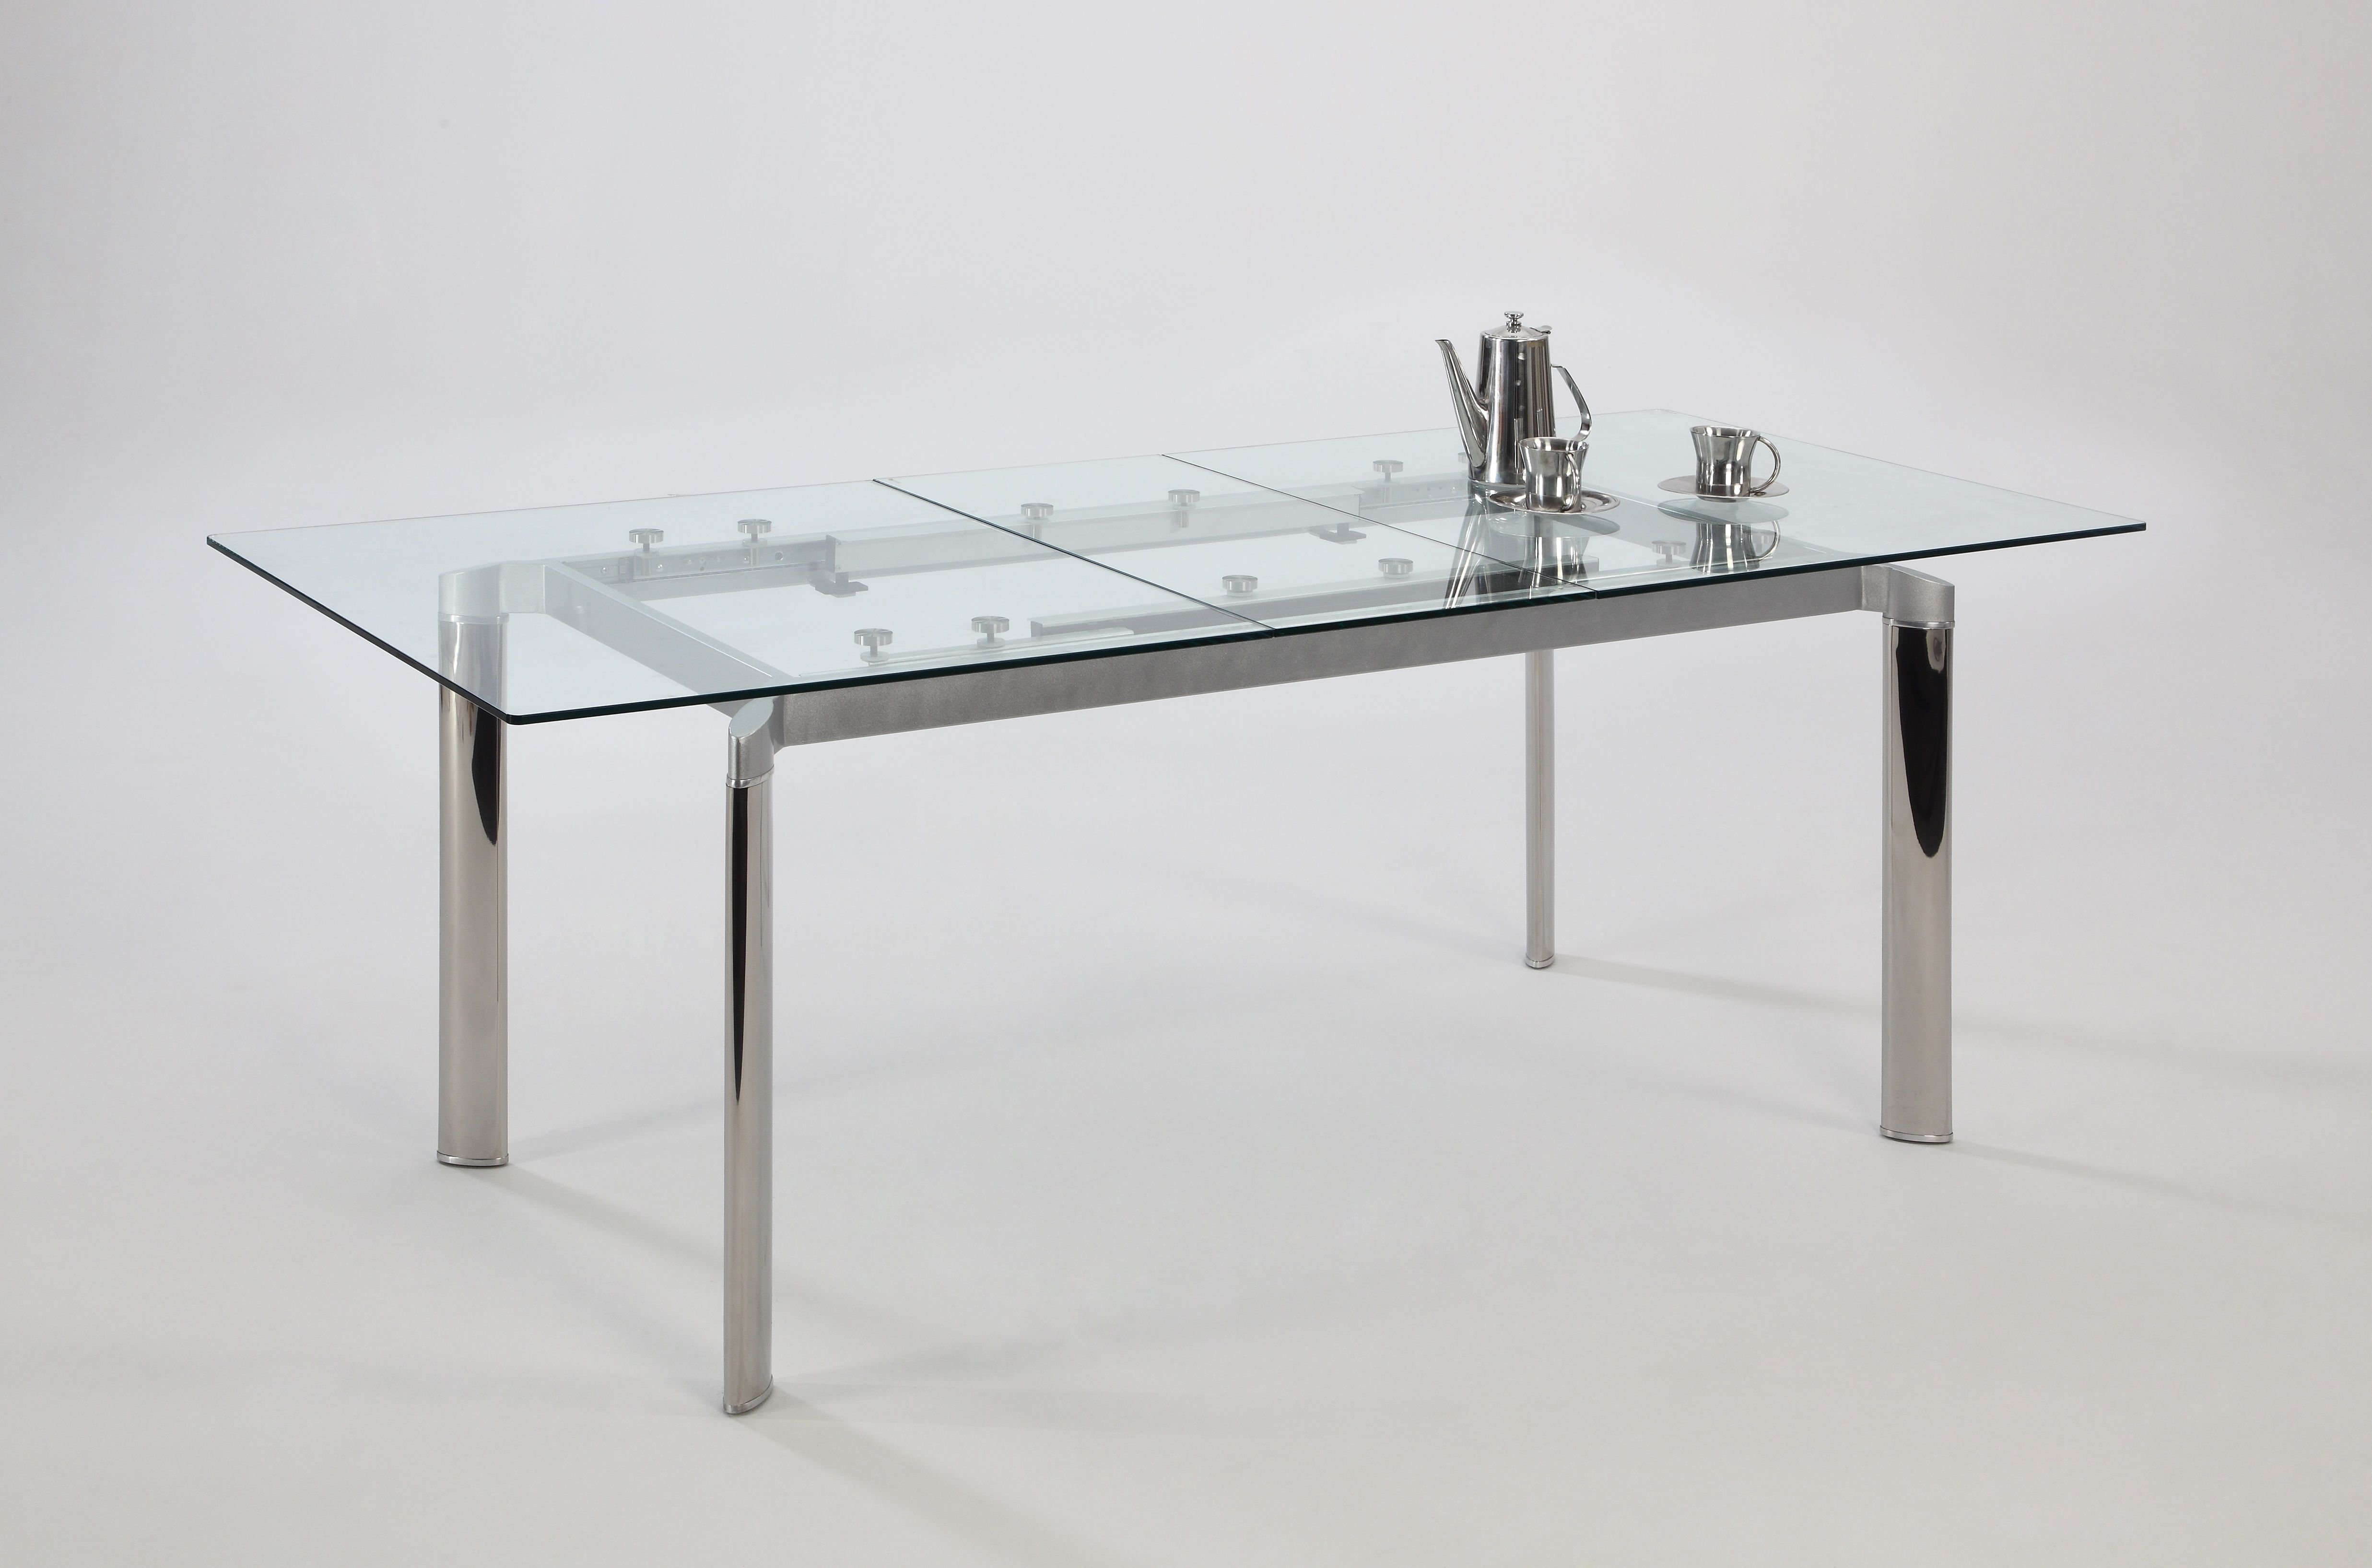 modern exclusive dining table luxurious design 1. Modern+Clear+Glass+and+Chrome+Extendable+Dining+Table+ Modern Exclusive Dining Table Luxurious Design 1